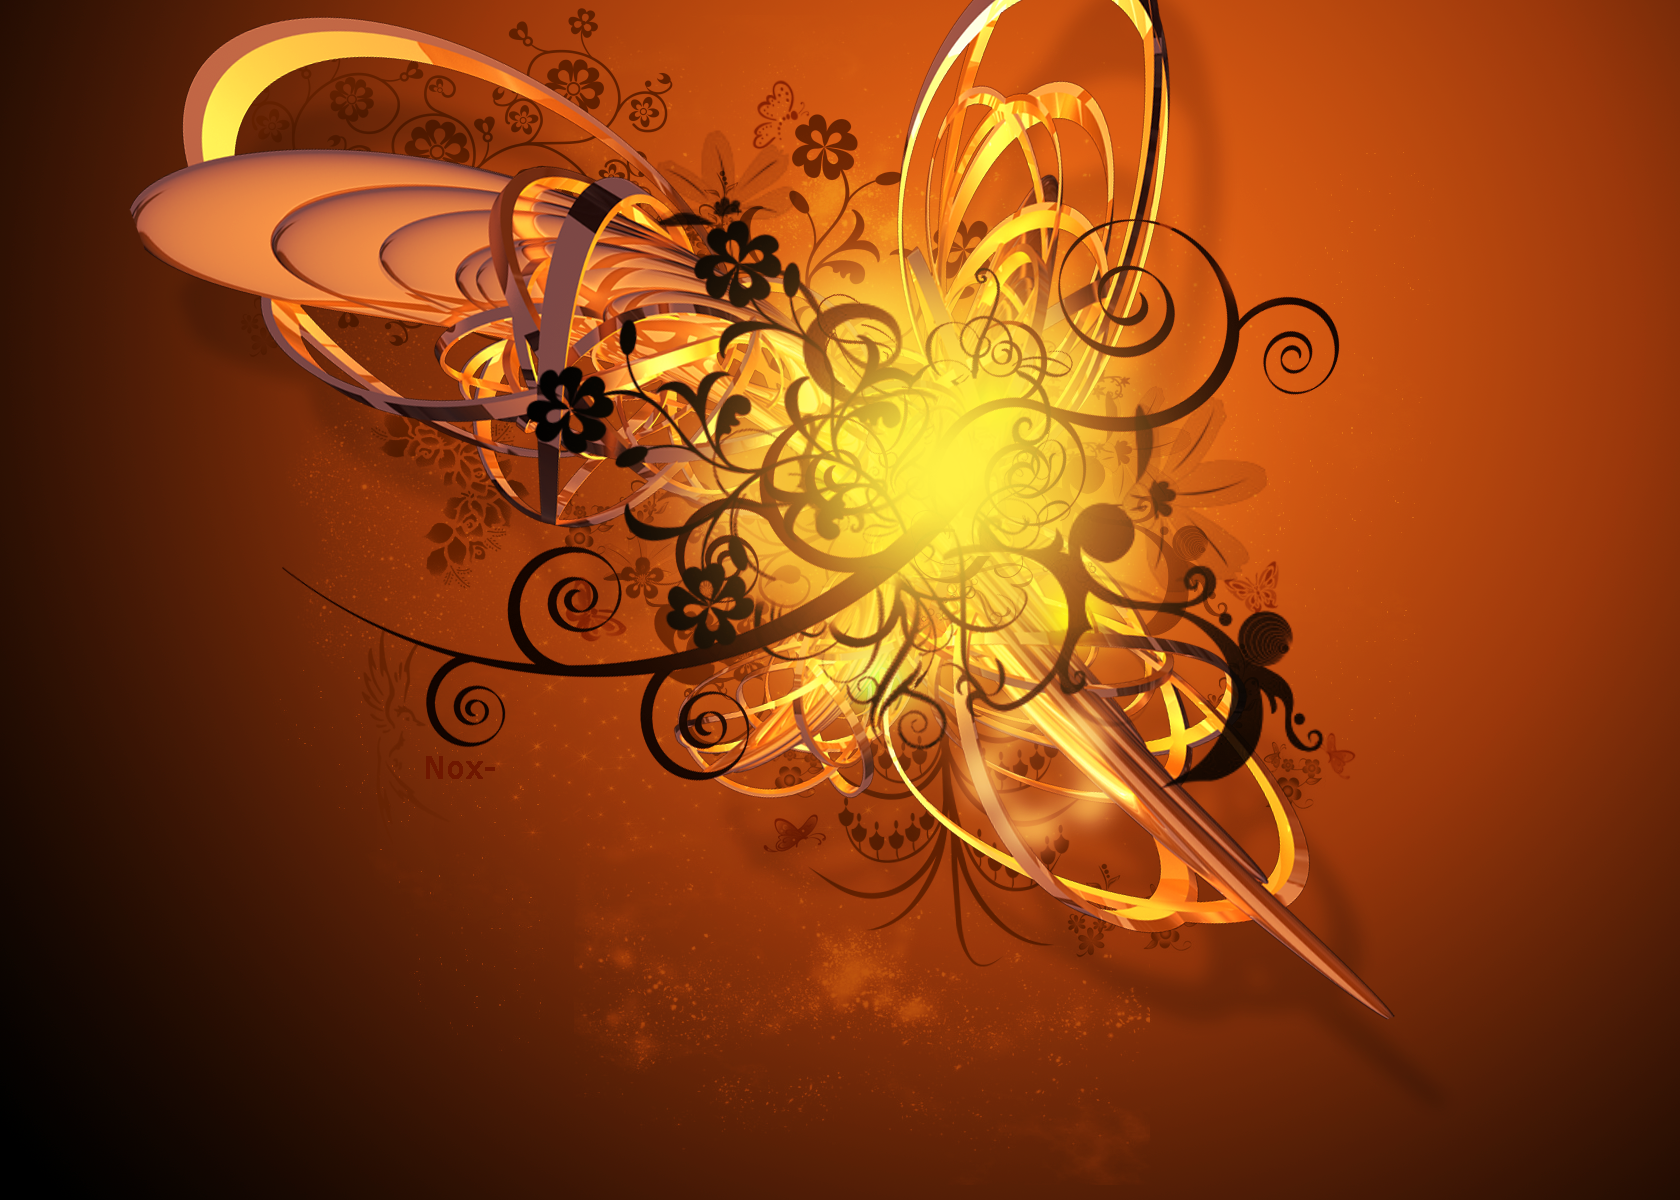 Some Artistic Wallpapers Vector___c4d_wallpaper_attempt_by_G_ulch